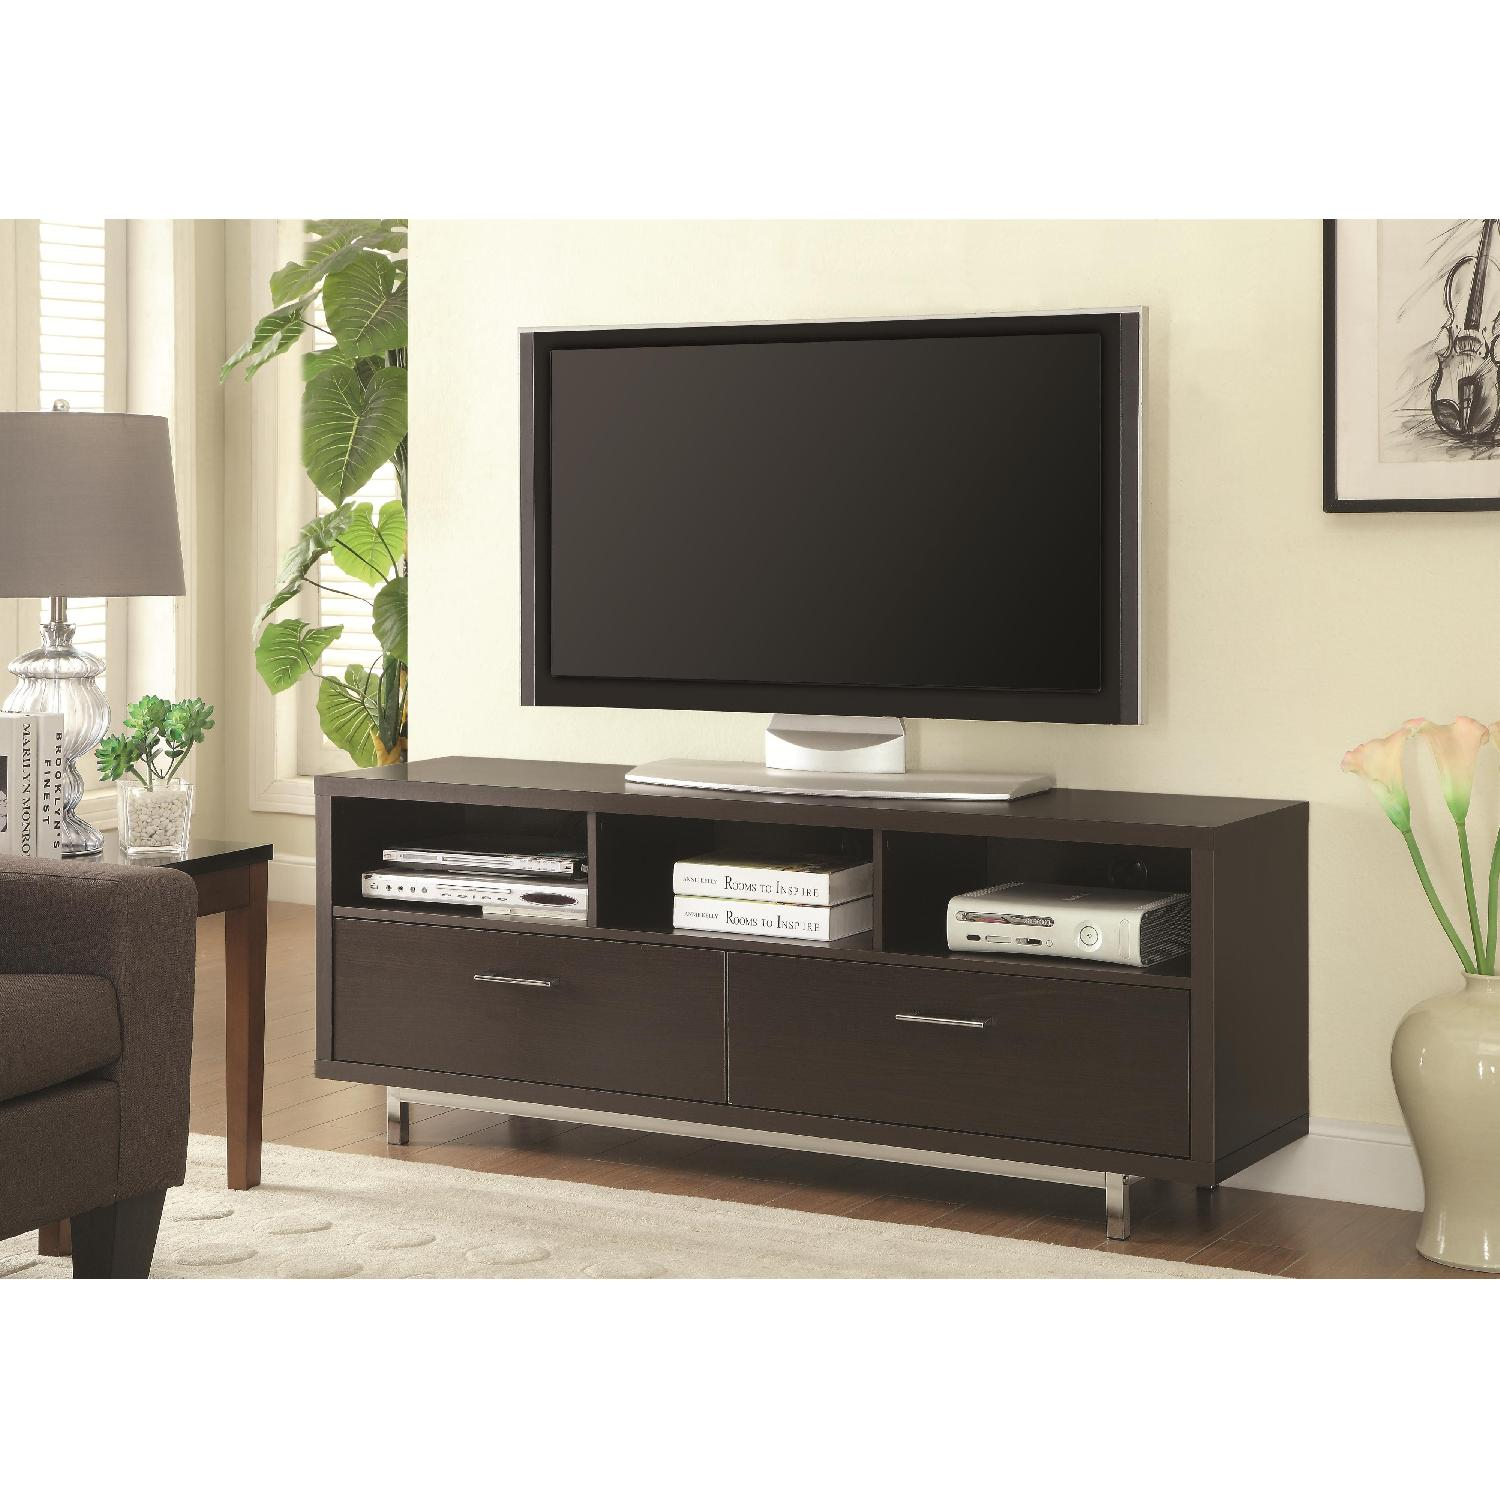 Modern TV Stand w/ 3 Media Shelves & 2 Utility Drawers w/ Si - image-1